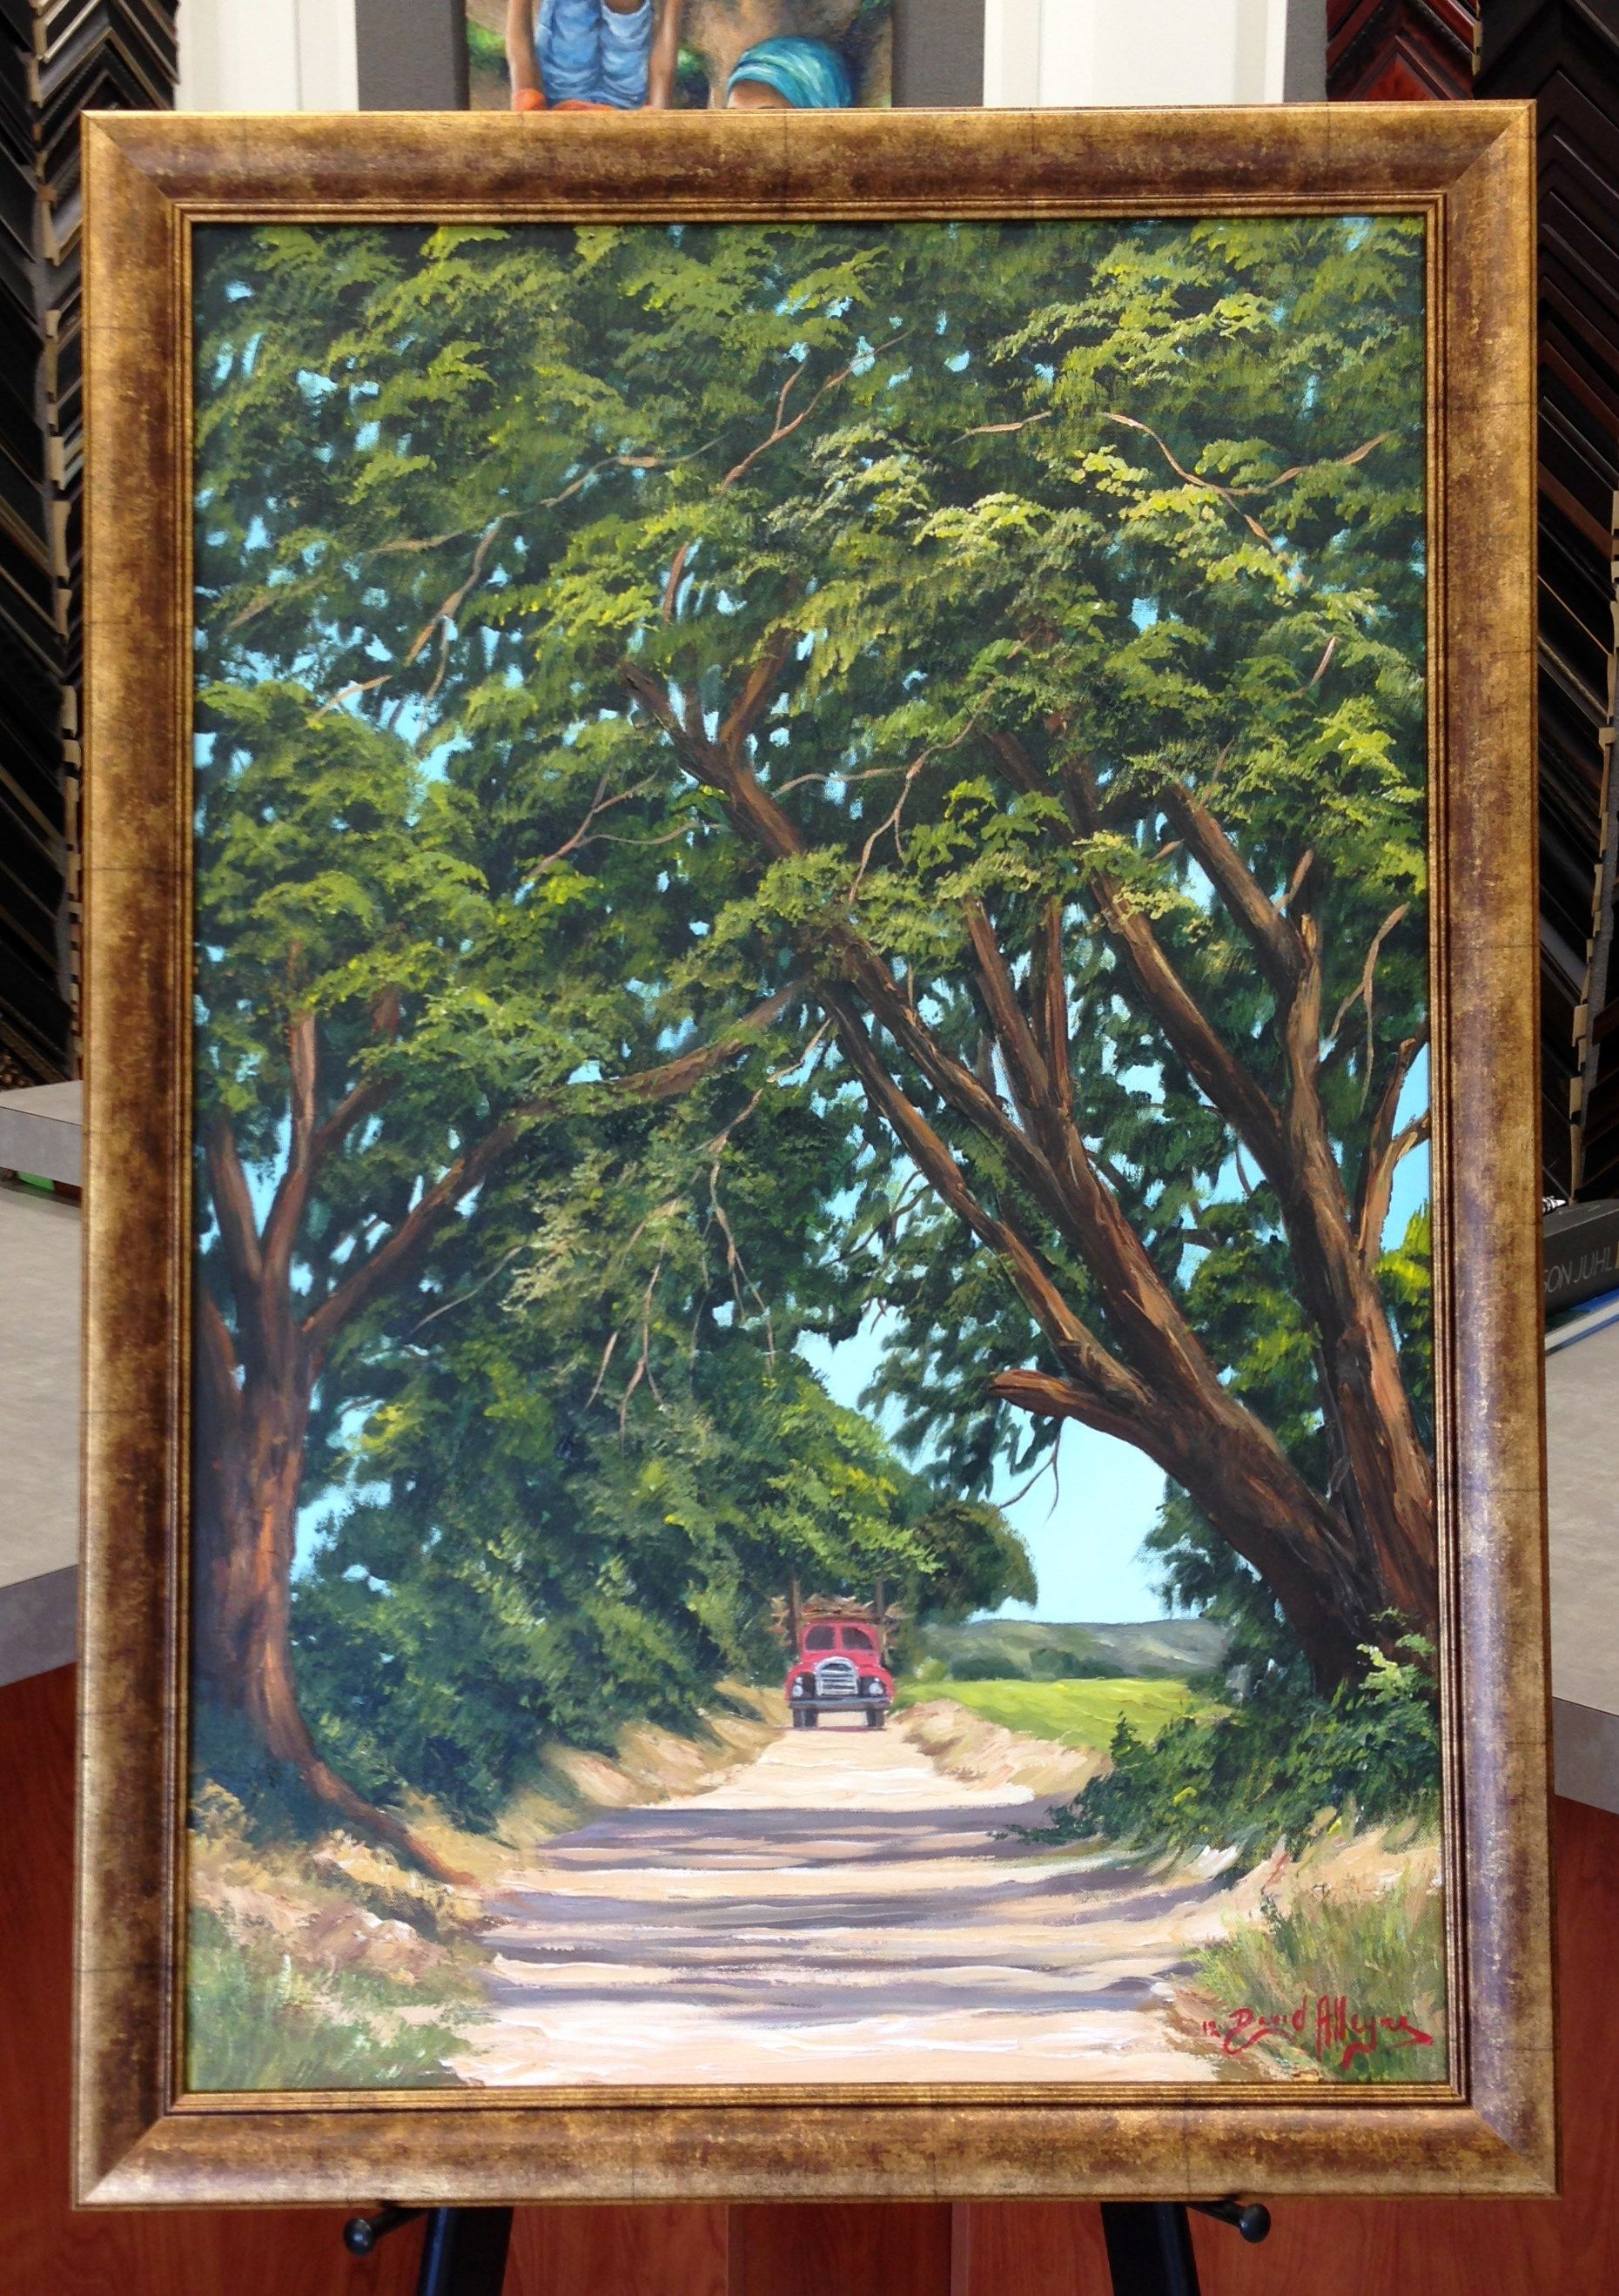 Original barbadian artist david alleyne framed in framerica verona original barbadian artist david alleyne framed in framerica verona vintage by the frame art co jeuxipadfo Gallery